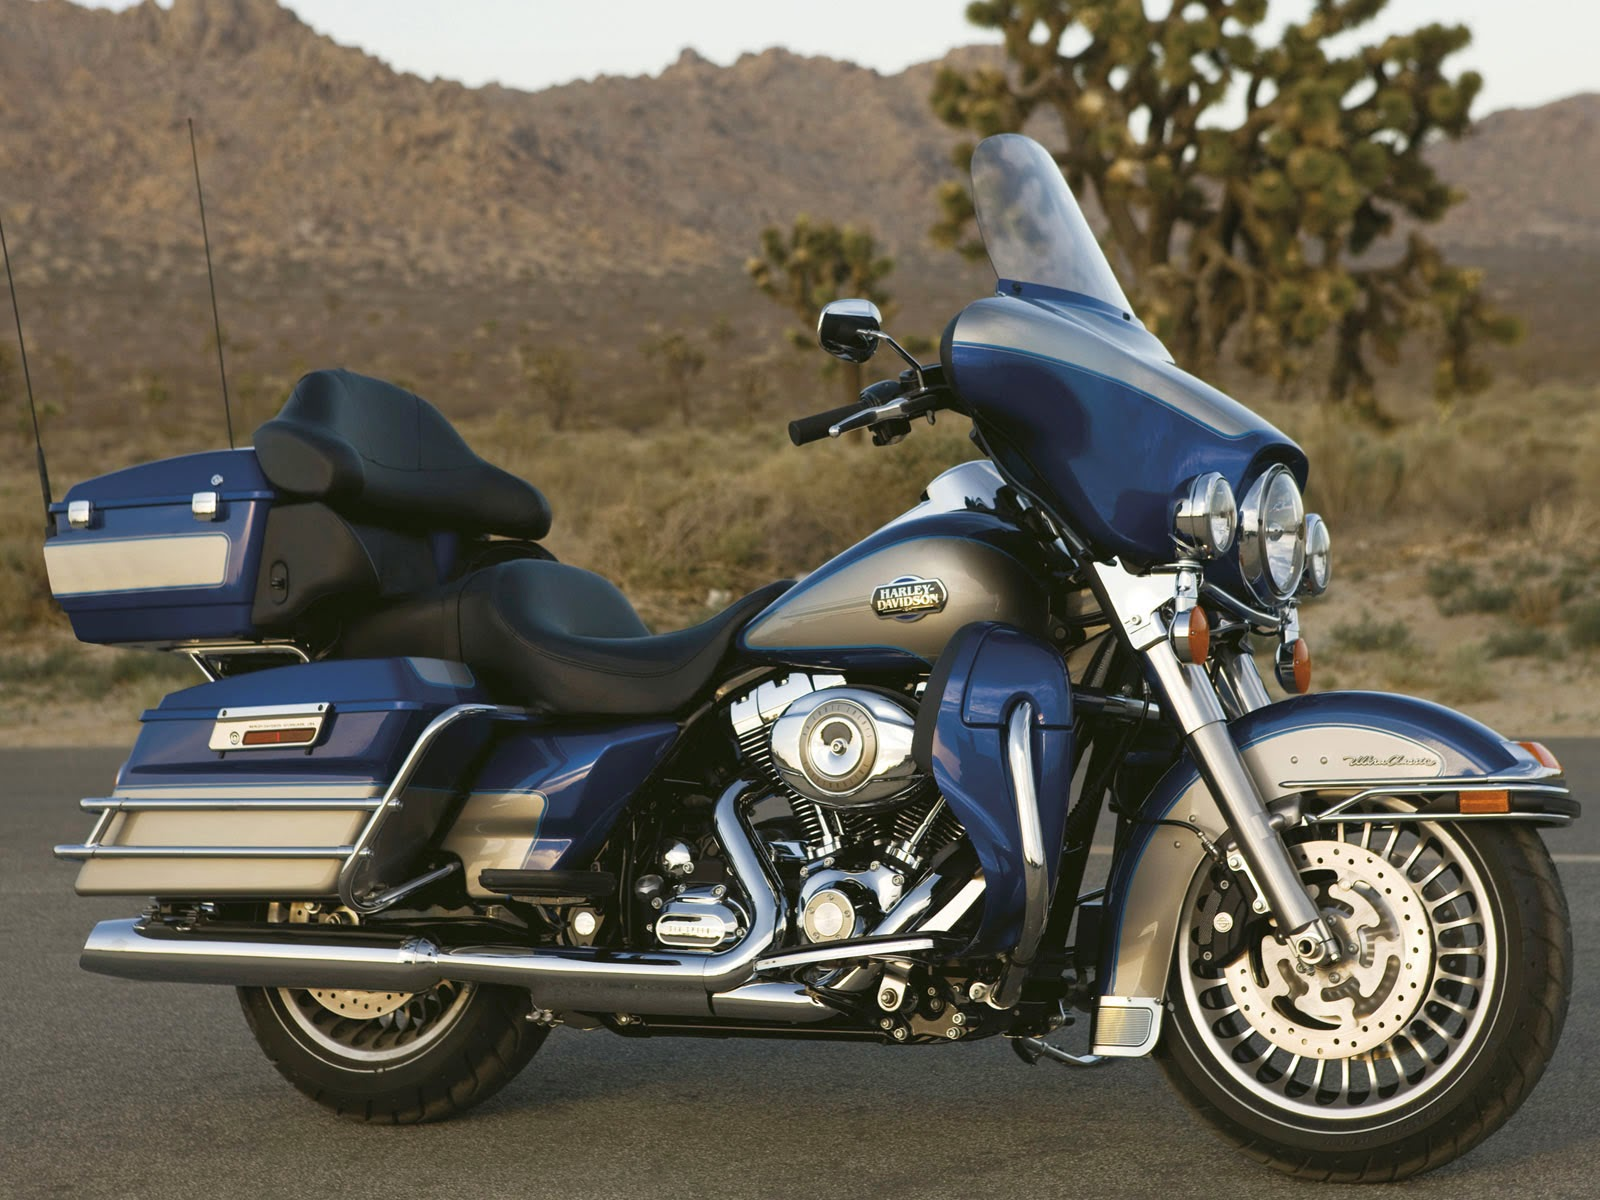 Harley-Davidson FLHTCU Ultra Classic Electra Glide Motorcycle Wallpapers